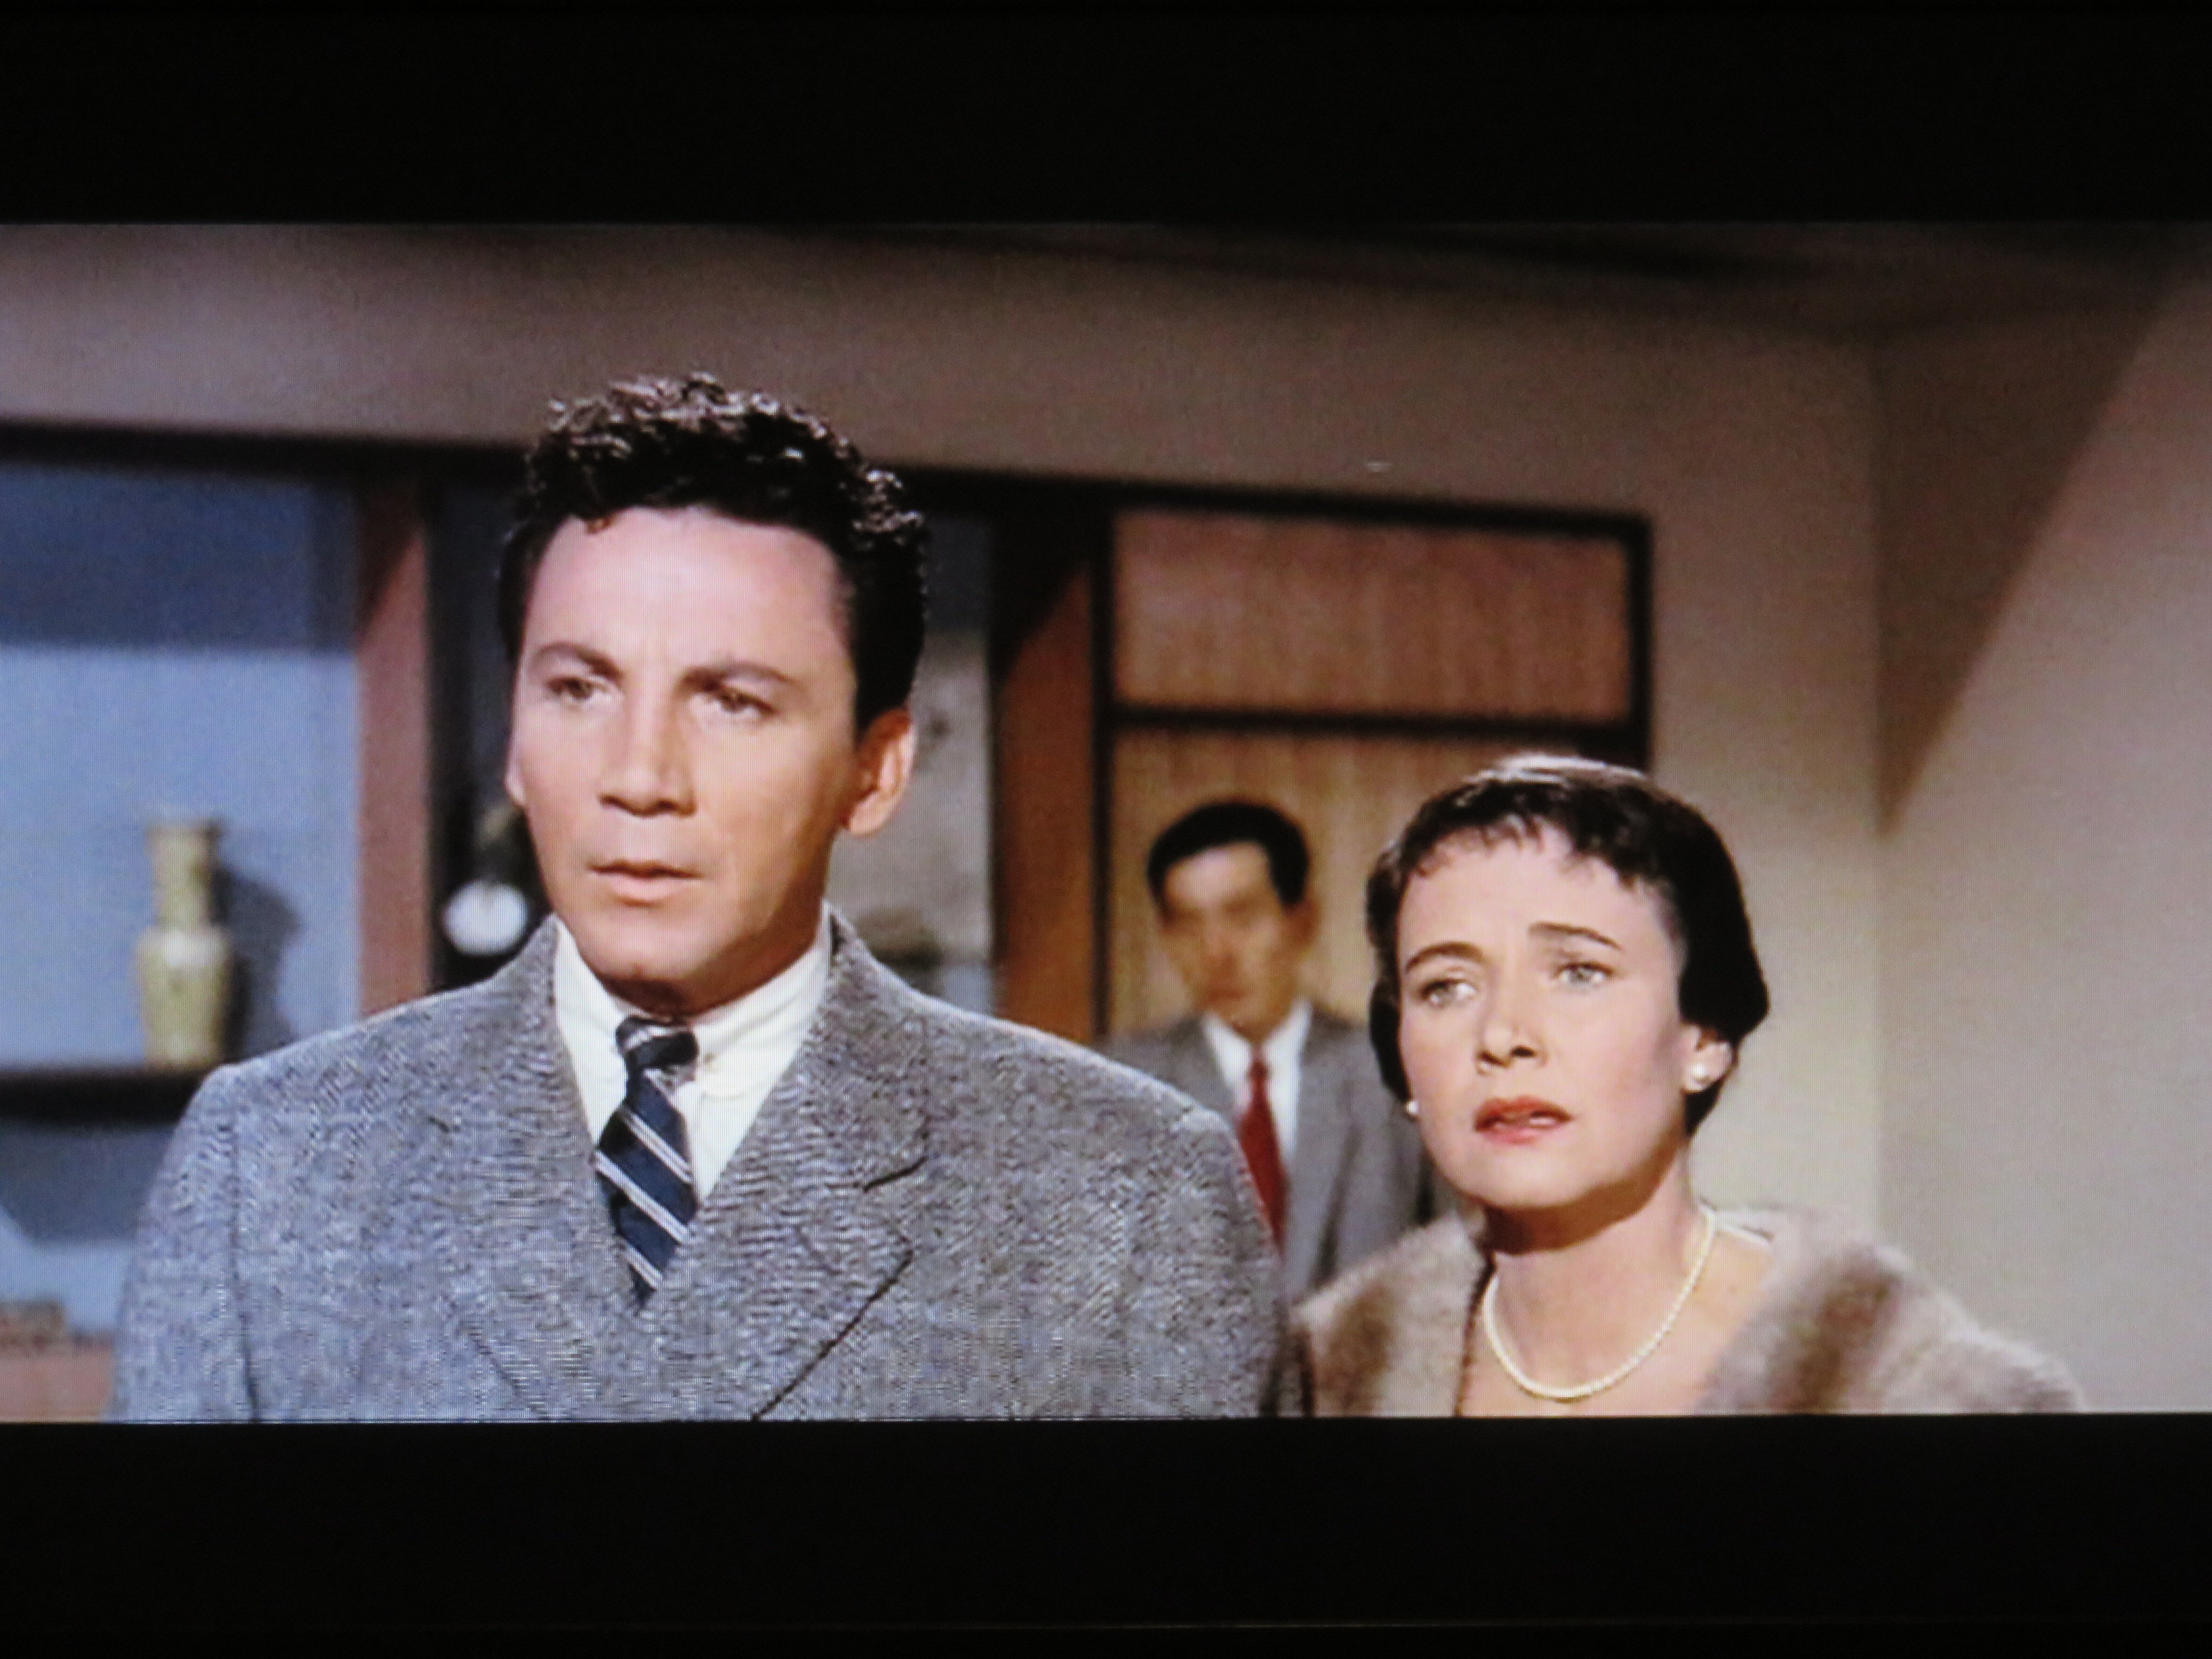 Cameron Mitchell and Teresa Wright in Escapade in Japan (1957)